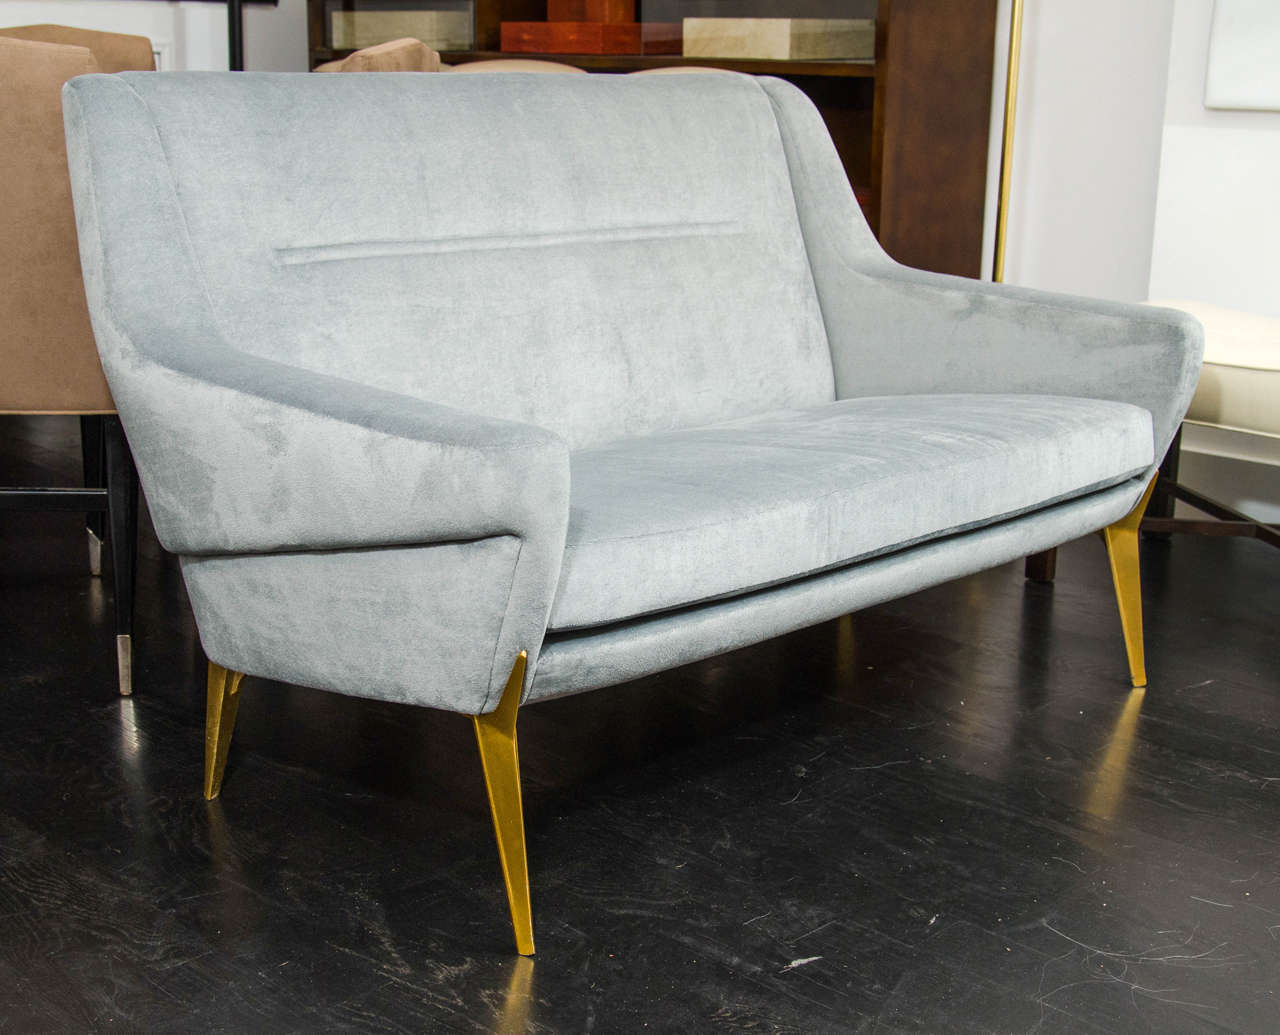 Vintage settee by Charles Ramos with gilt aluminum legs and fresh velvet upholstery.